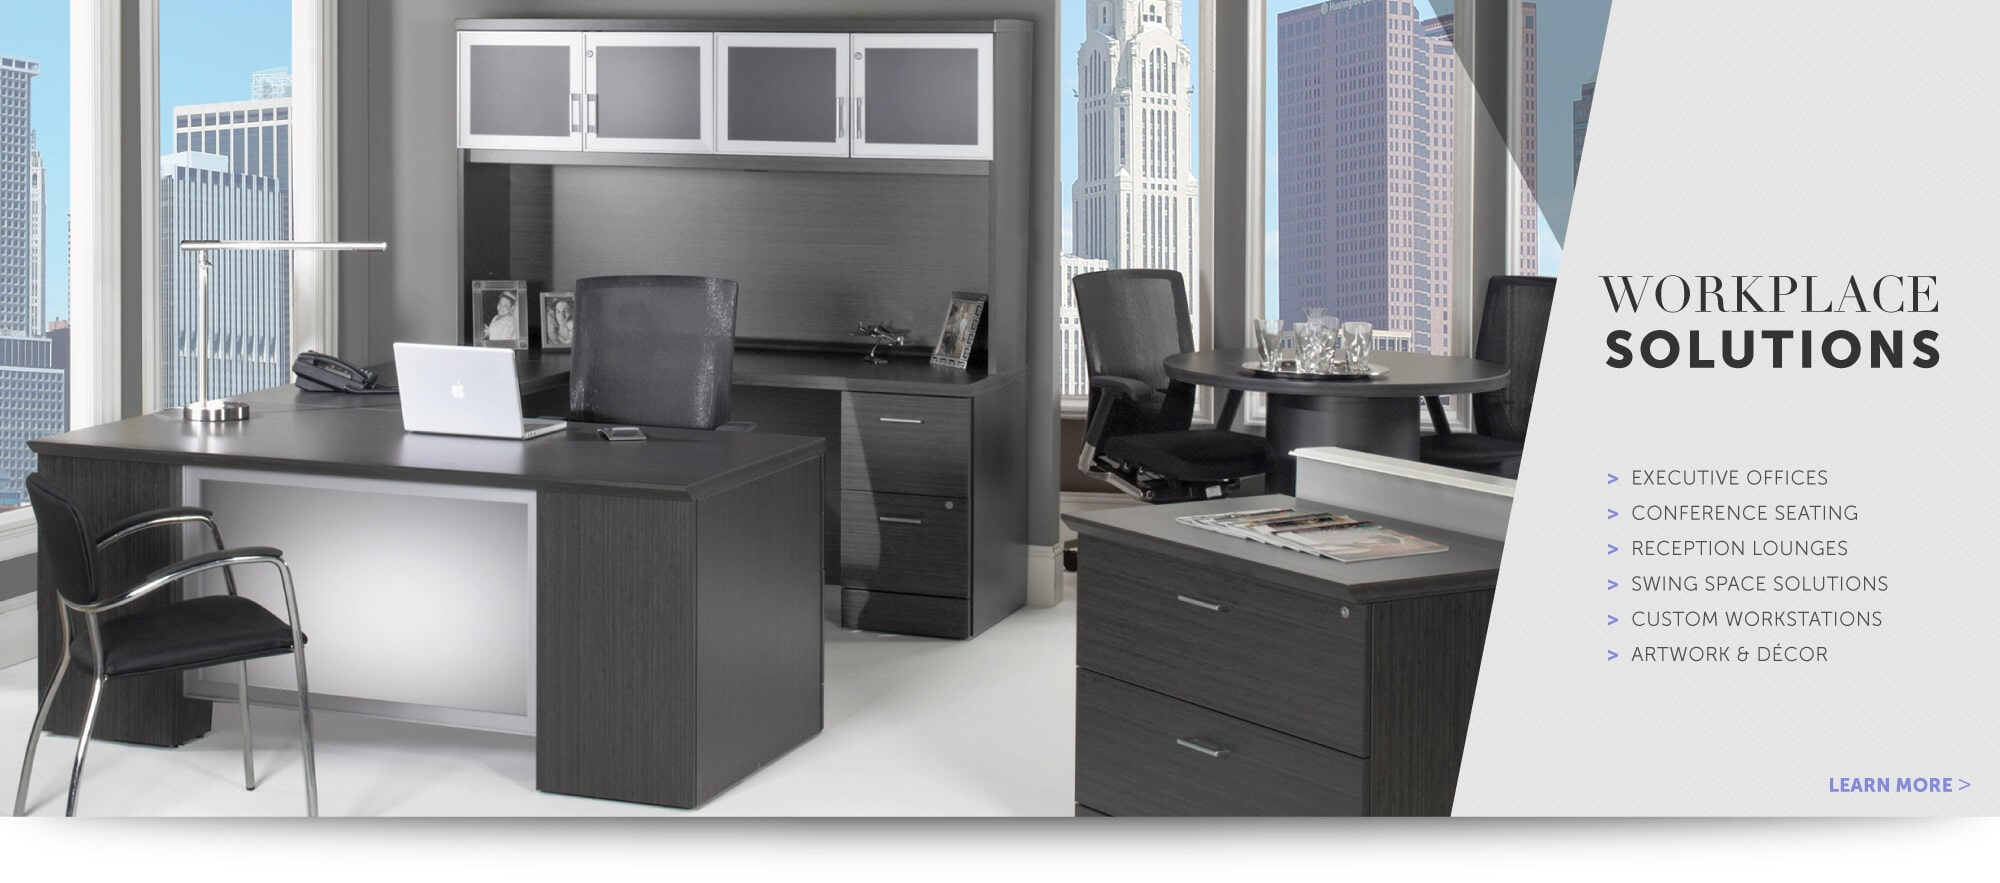 Captivating AFR Provides You With Outstanding Service And The Perfect Solution For Furniture  Rentals Of Every Type And Need Including Home, Apartment, Office, ...